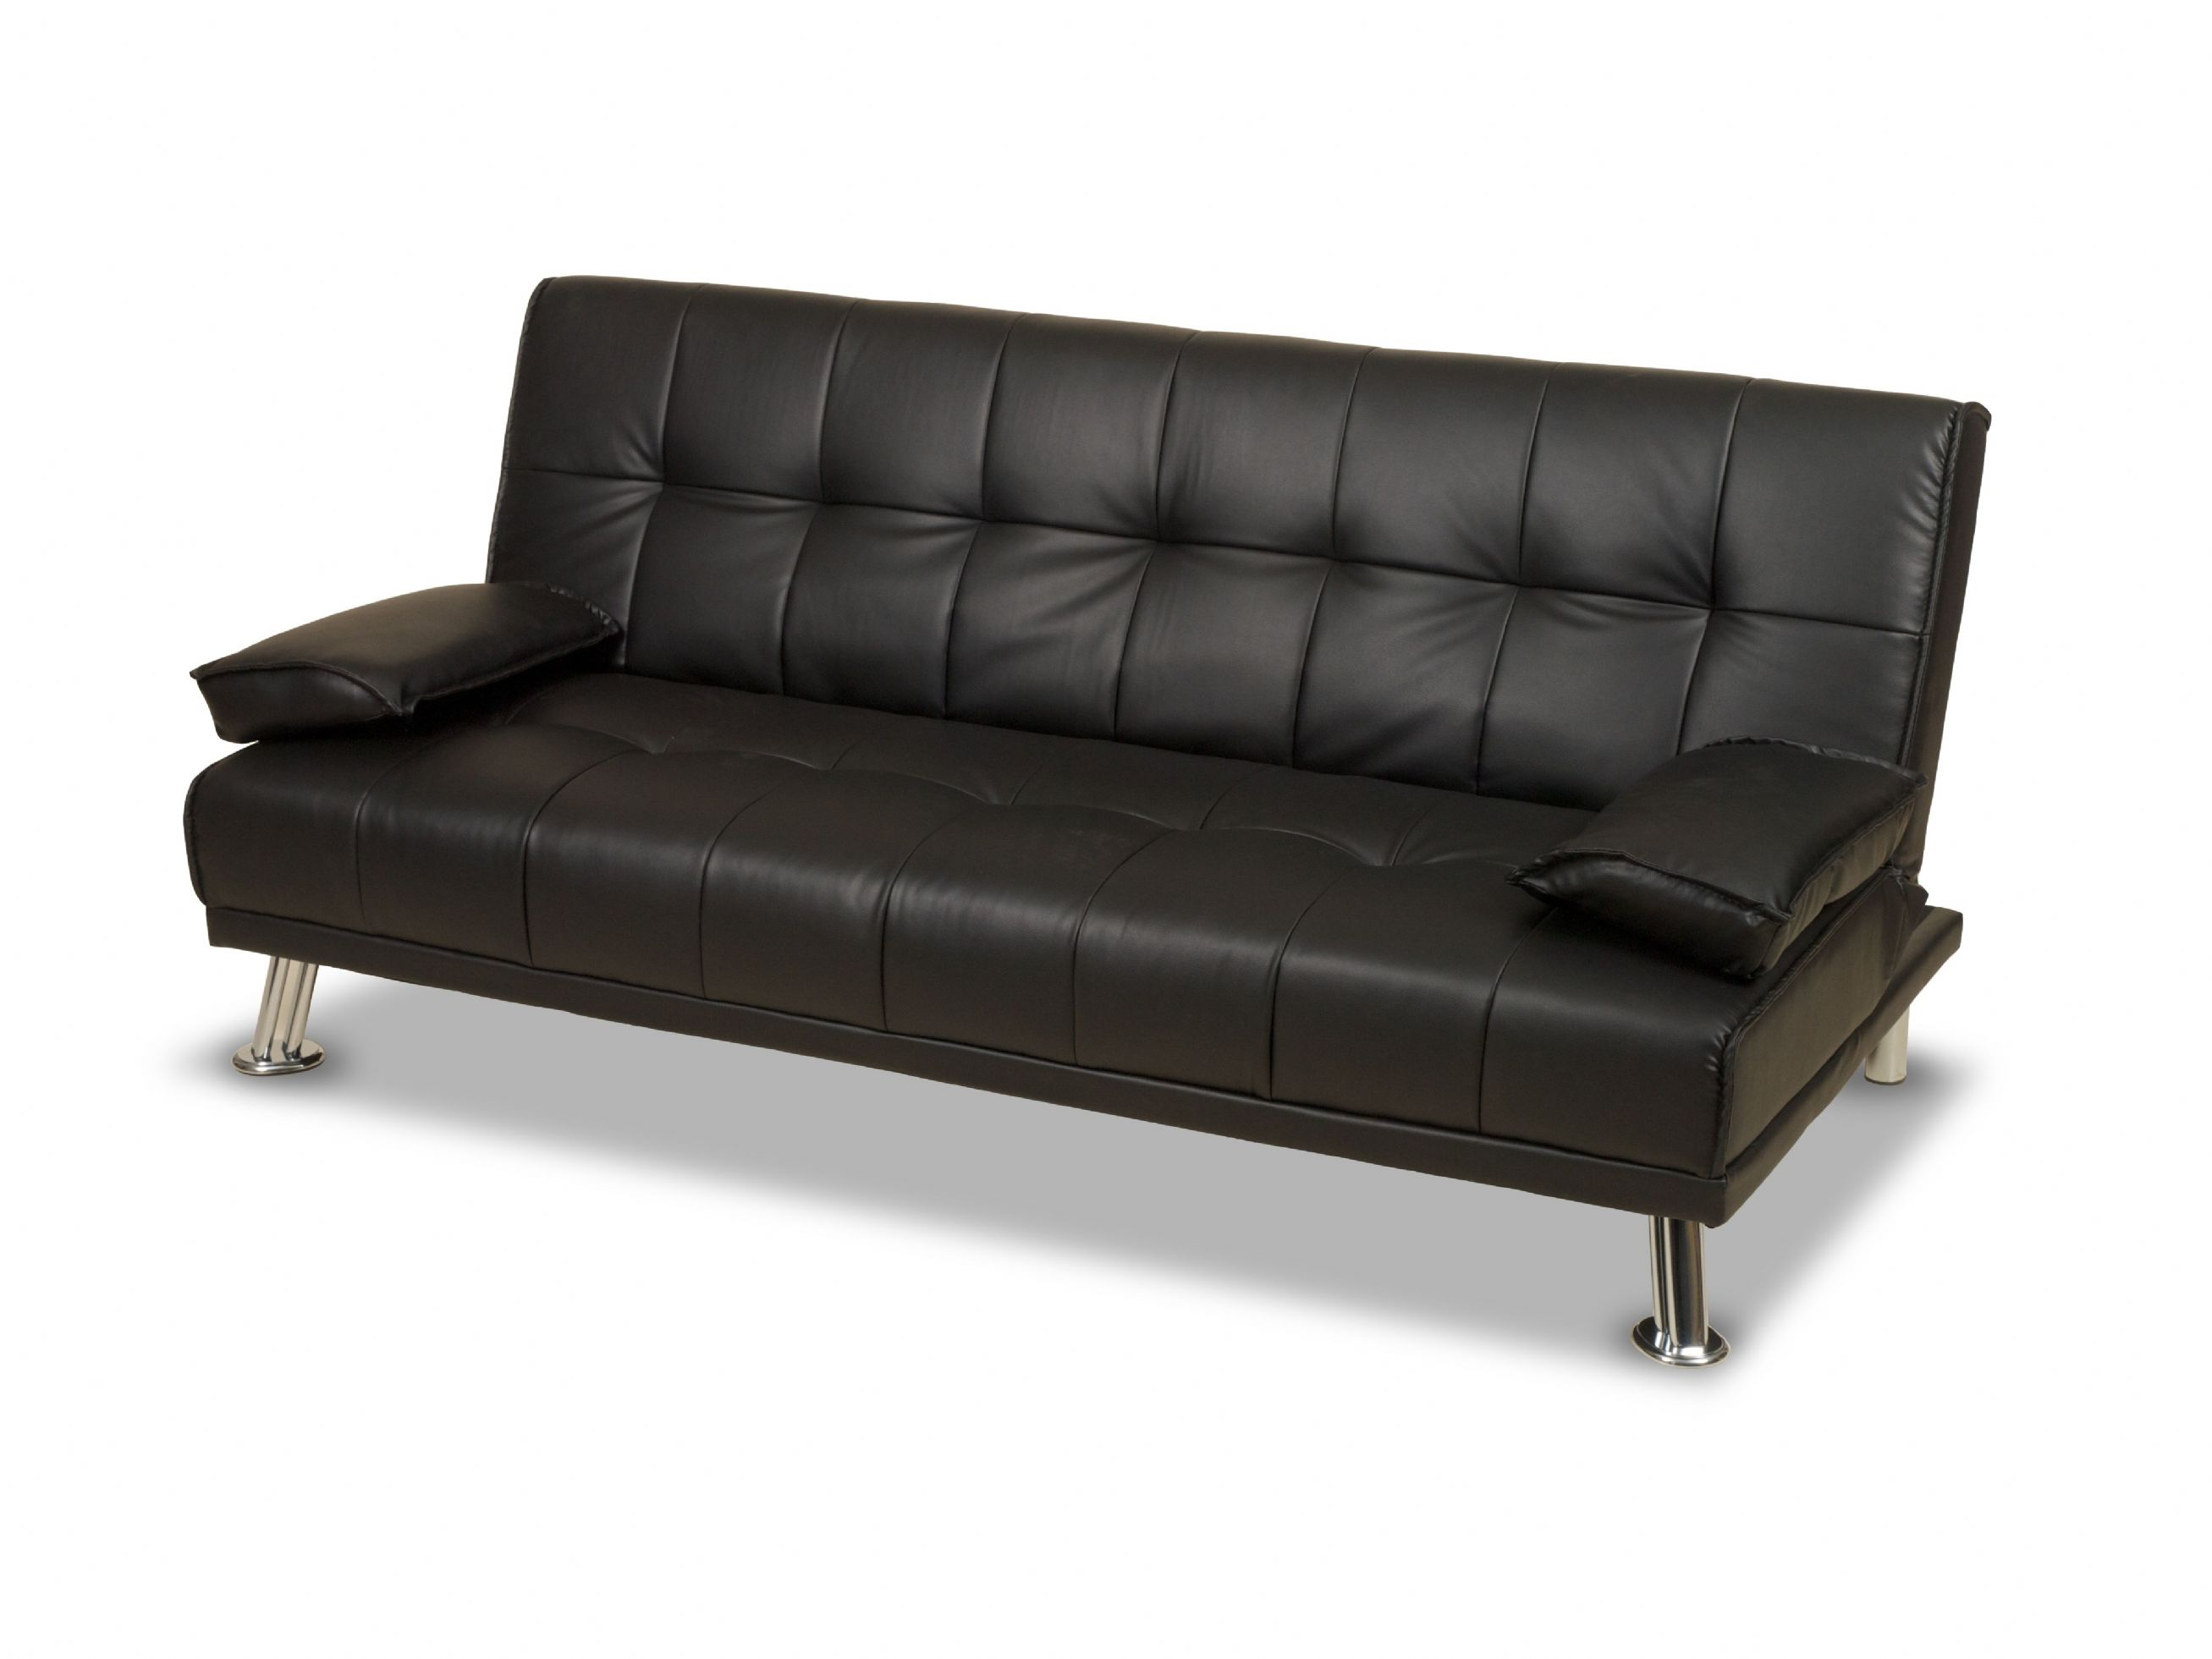 Sofa Ideas Leather Sofa Beds